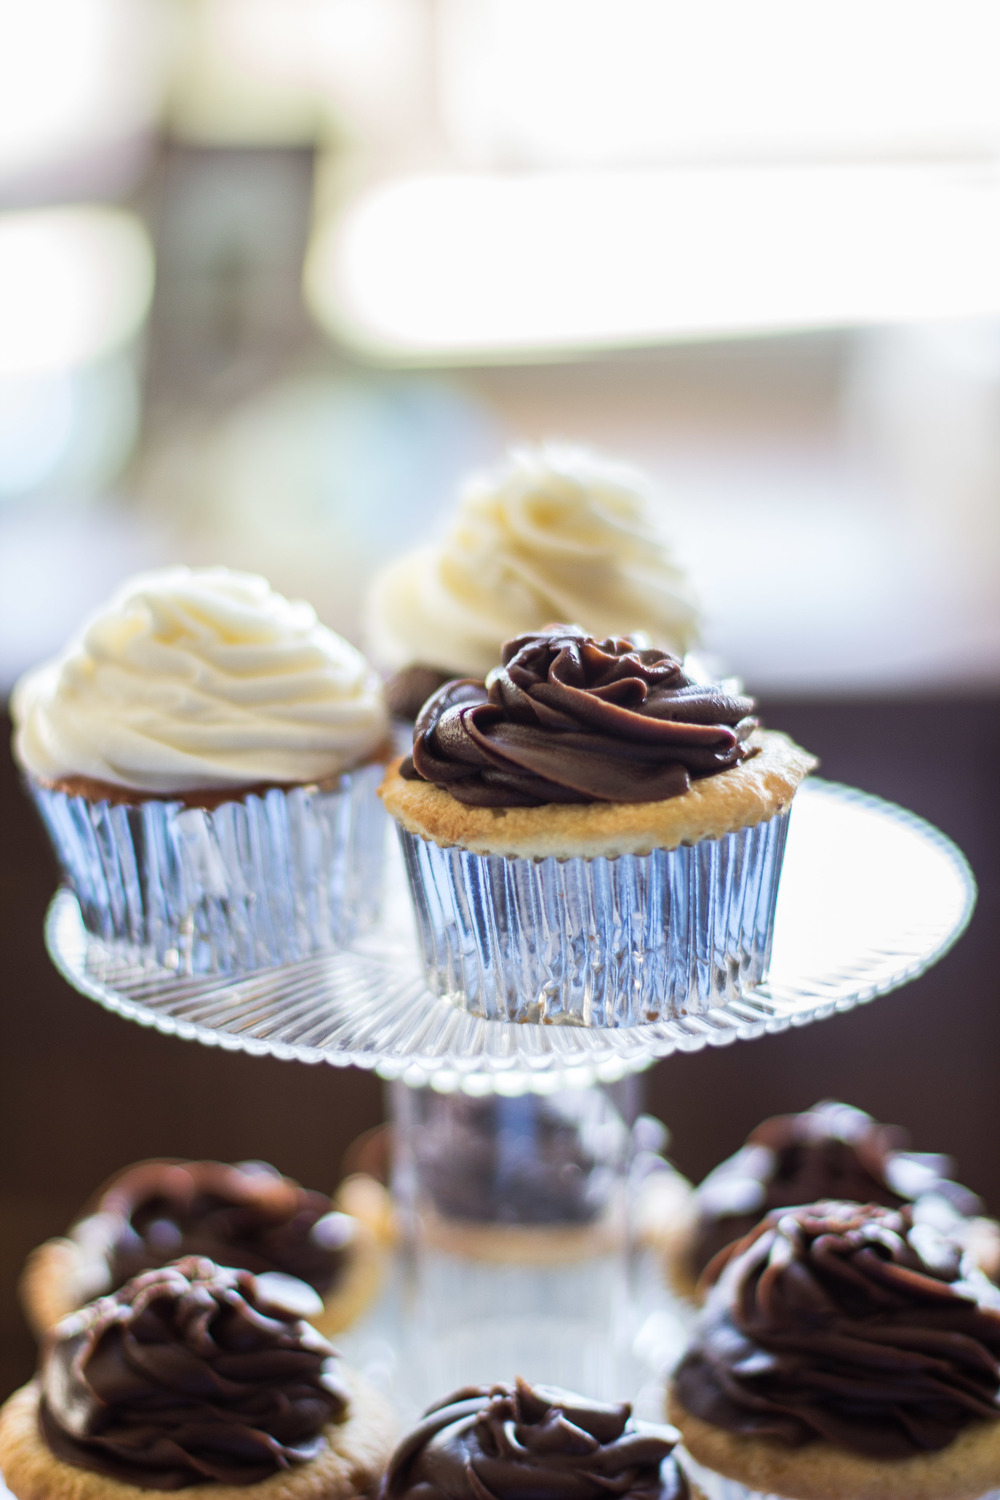 Cupcake Tier Rustic Aqua Sea Wedding Decor | Martinsborough Wedding Reception - Greenville NC | Bryant Tyson Photography